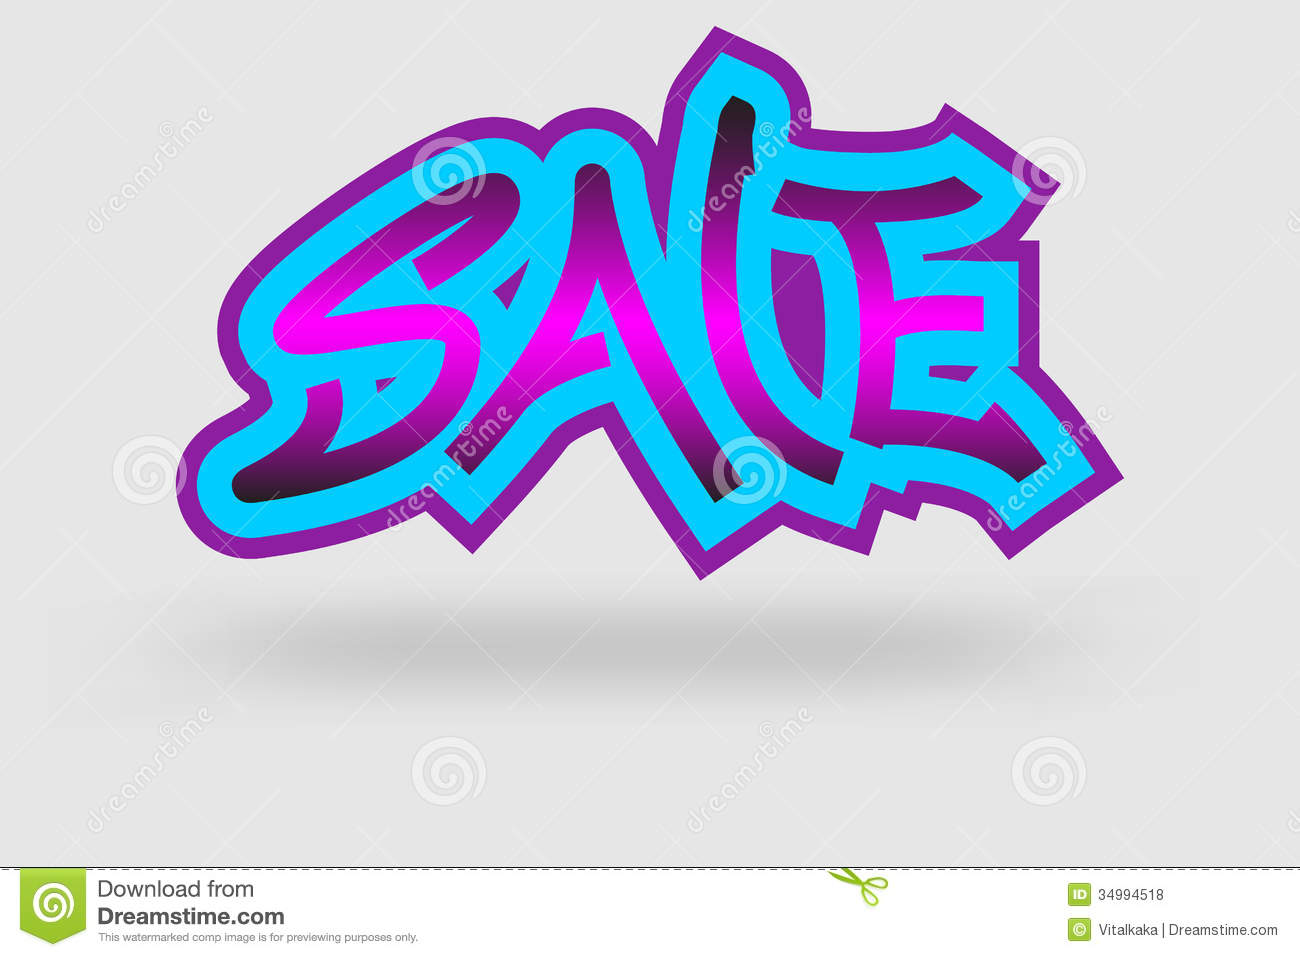 Graffiti art sale - Art Backgrounds Banner Culture Graffiti Modern Sale